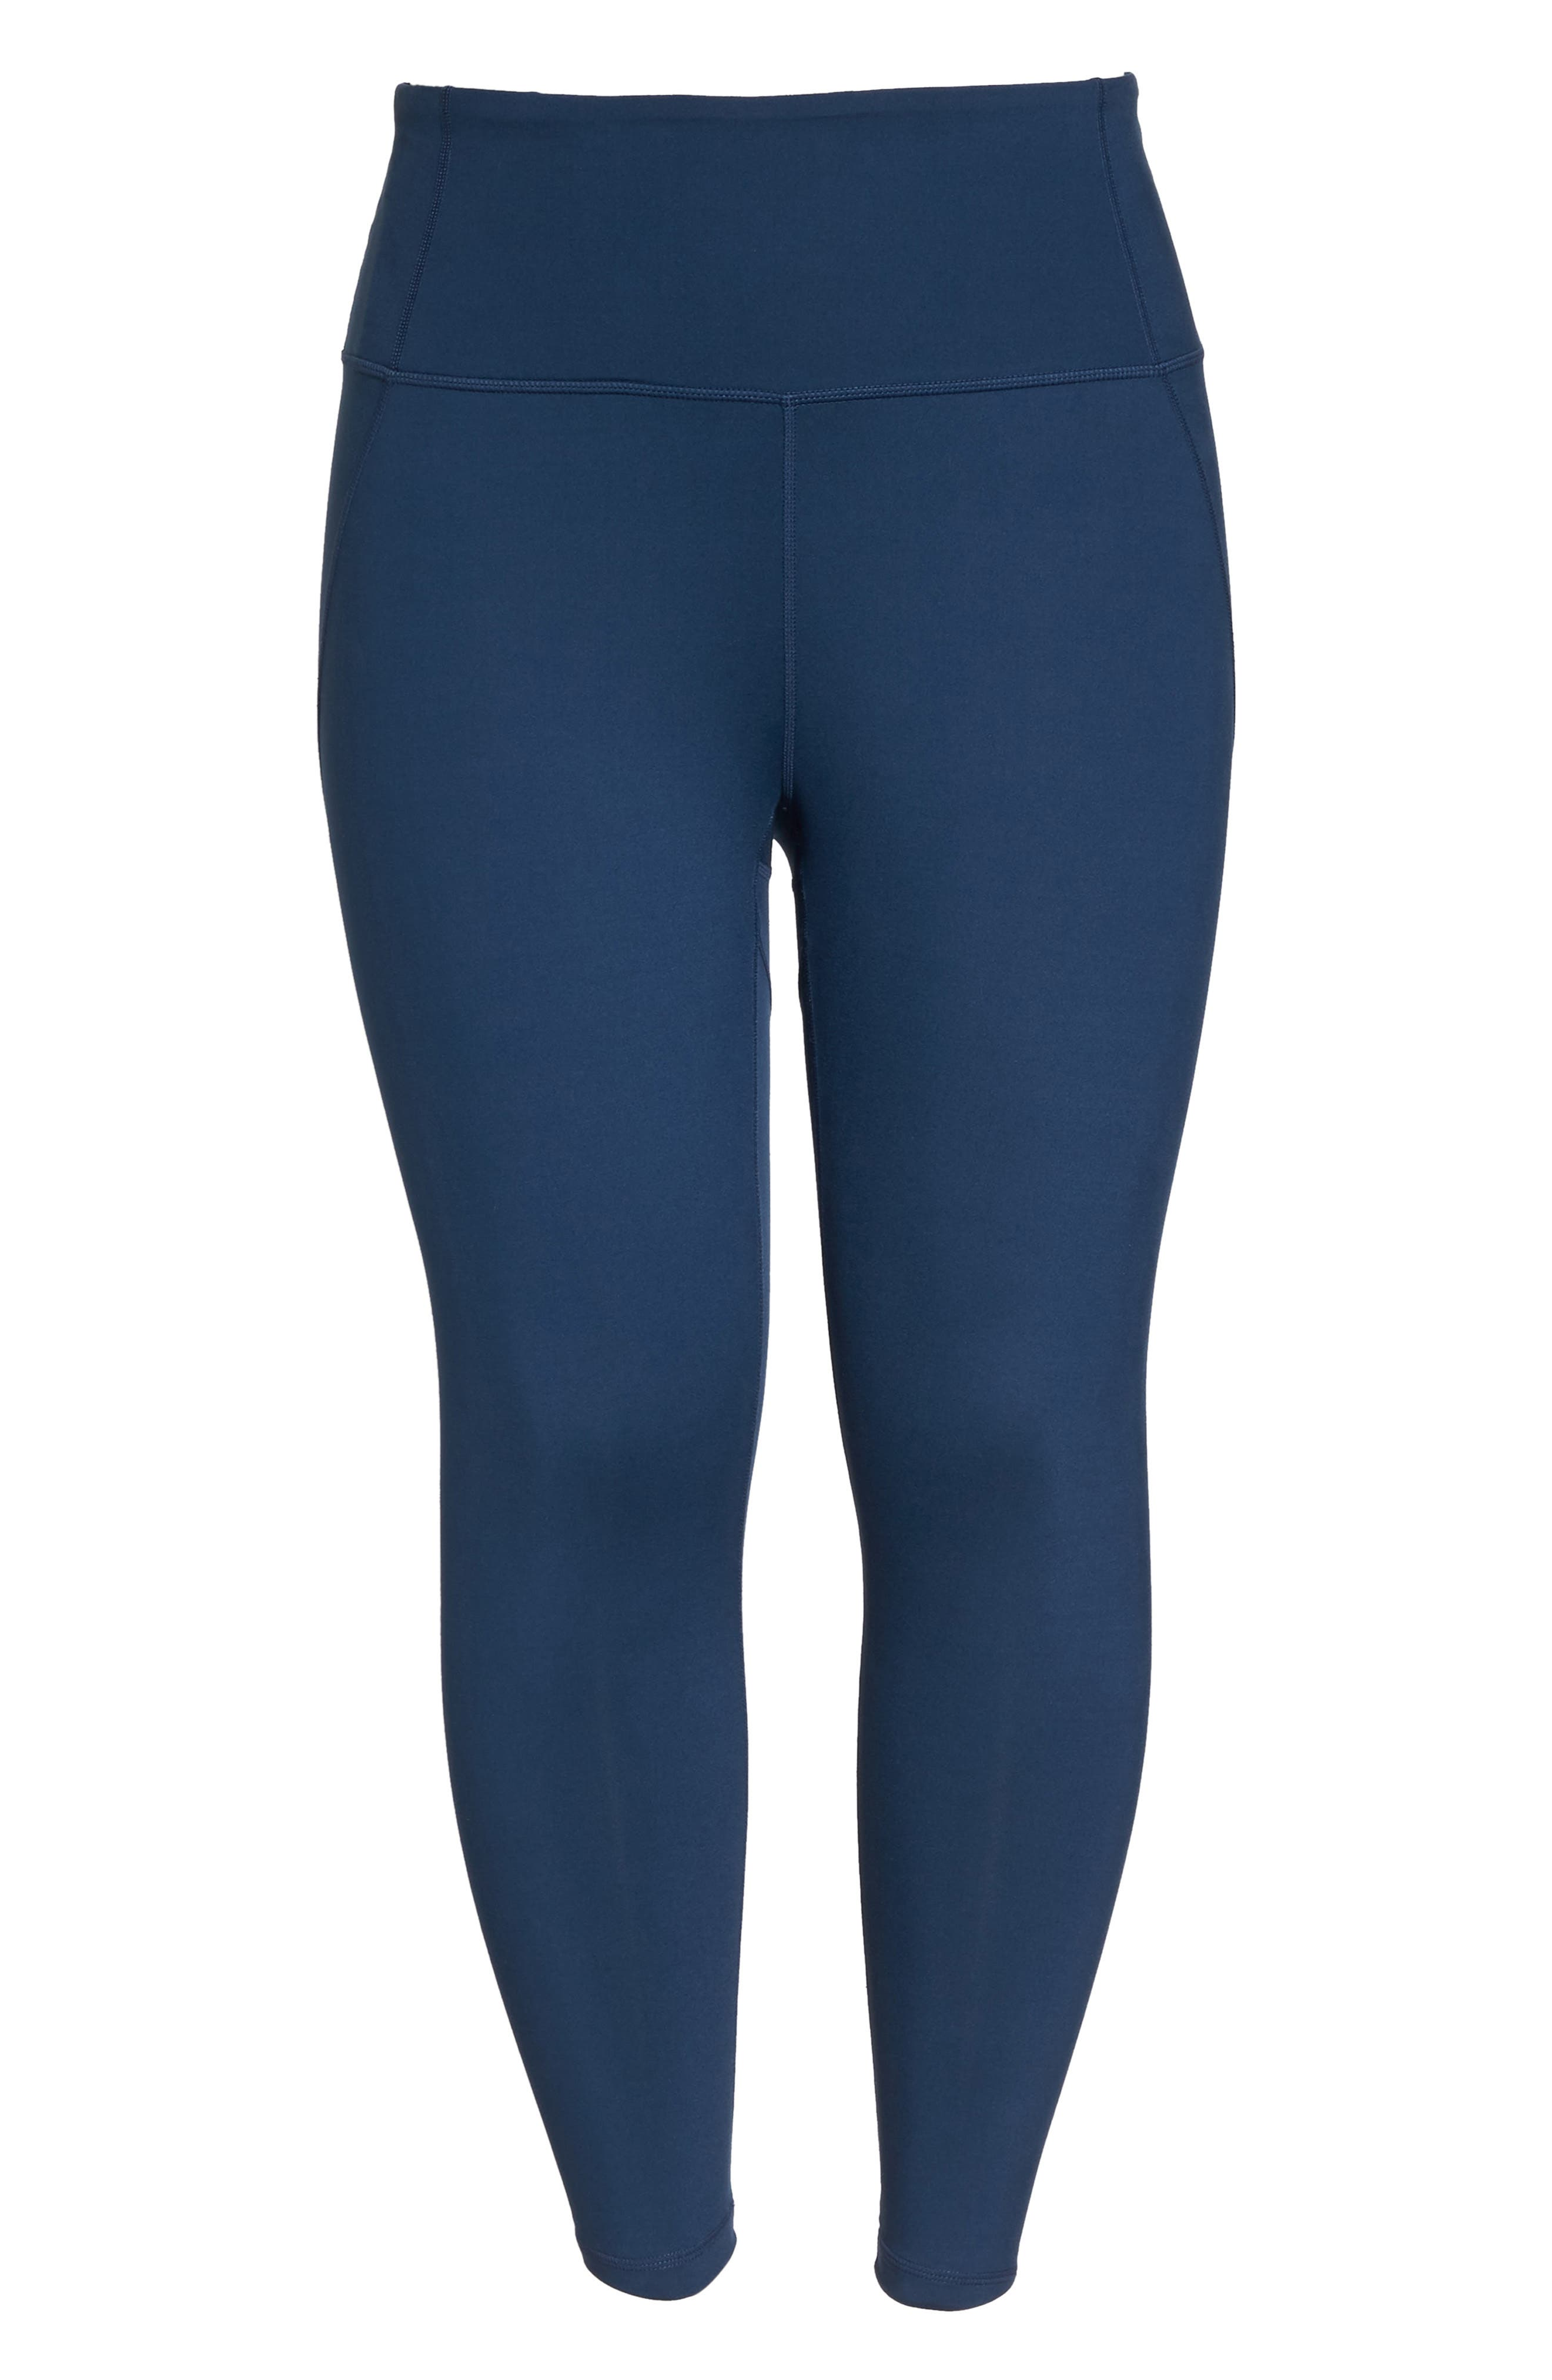 Lightweight High Waist Midi Leggings,                             Alternate thumbnail 6, color,                             Blue Insignia